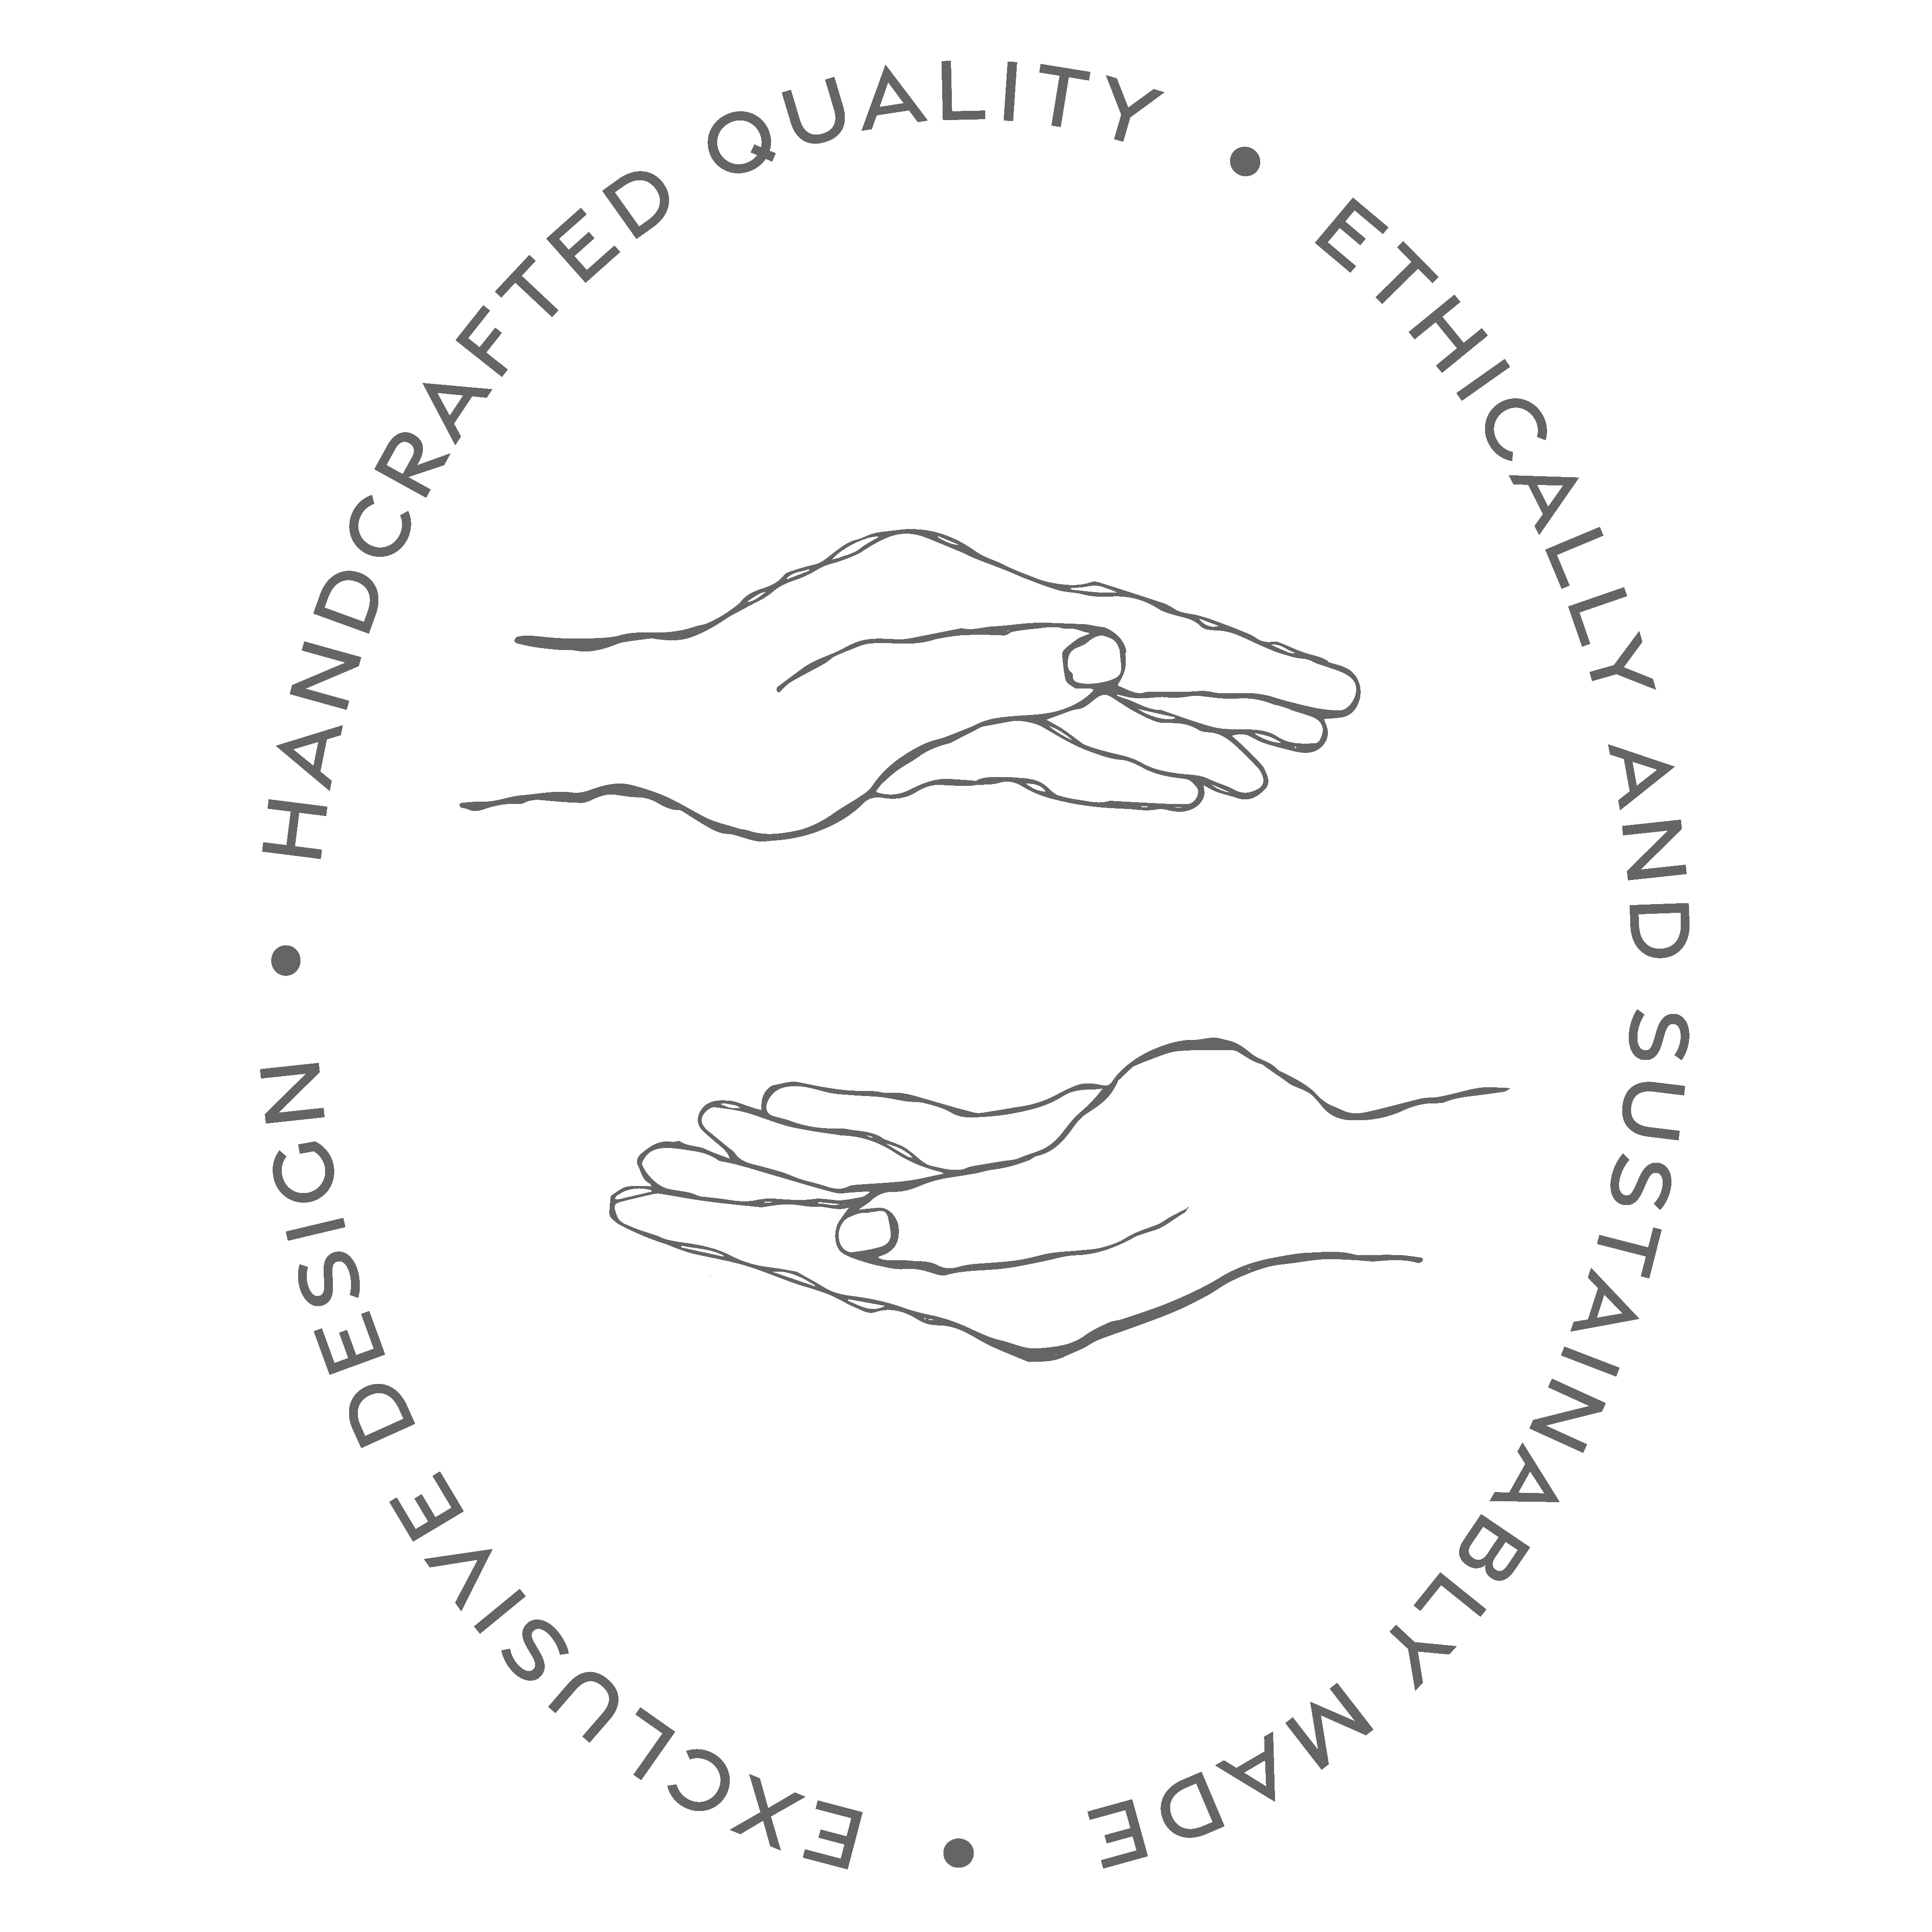 Saudade Collective hands sustainability